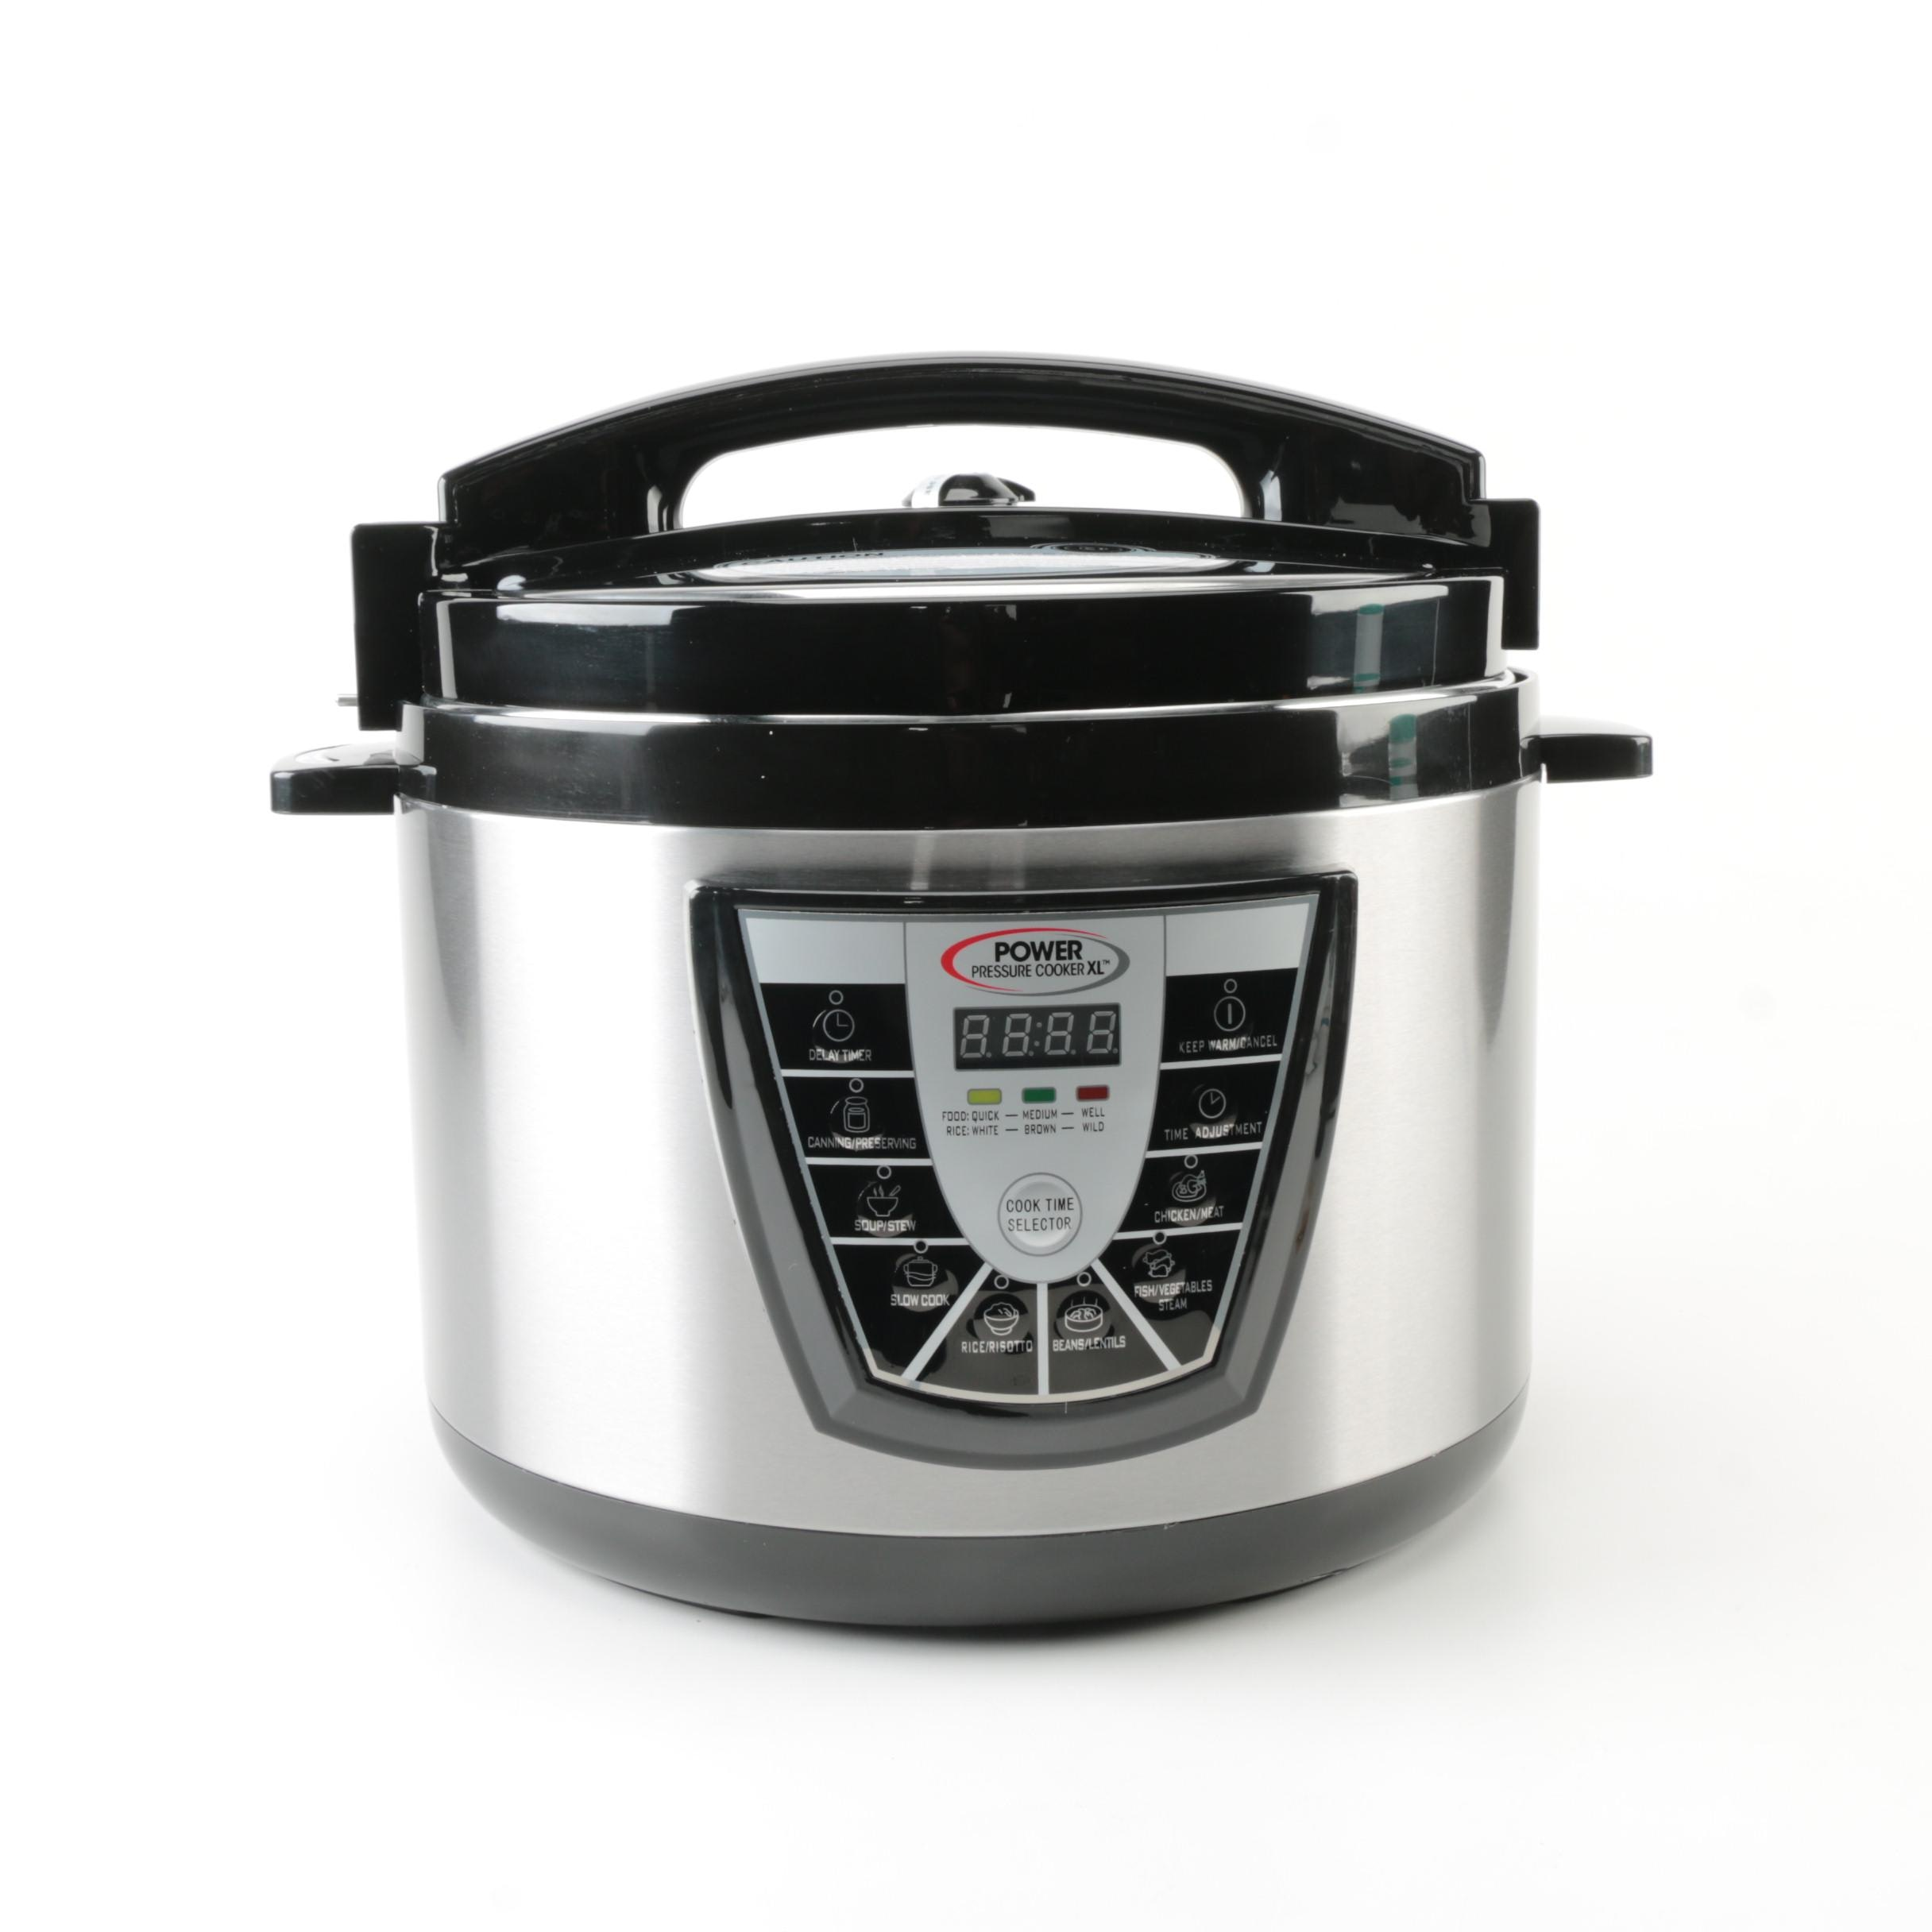 Intertek Electric Pressure Cooker